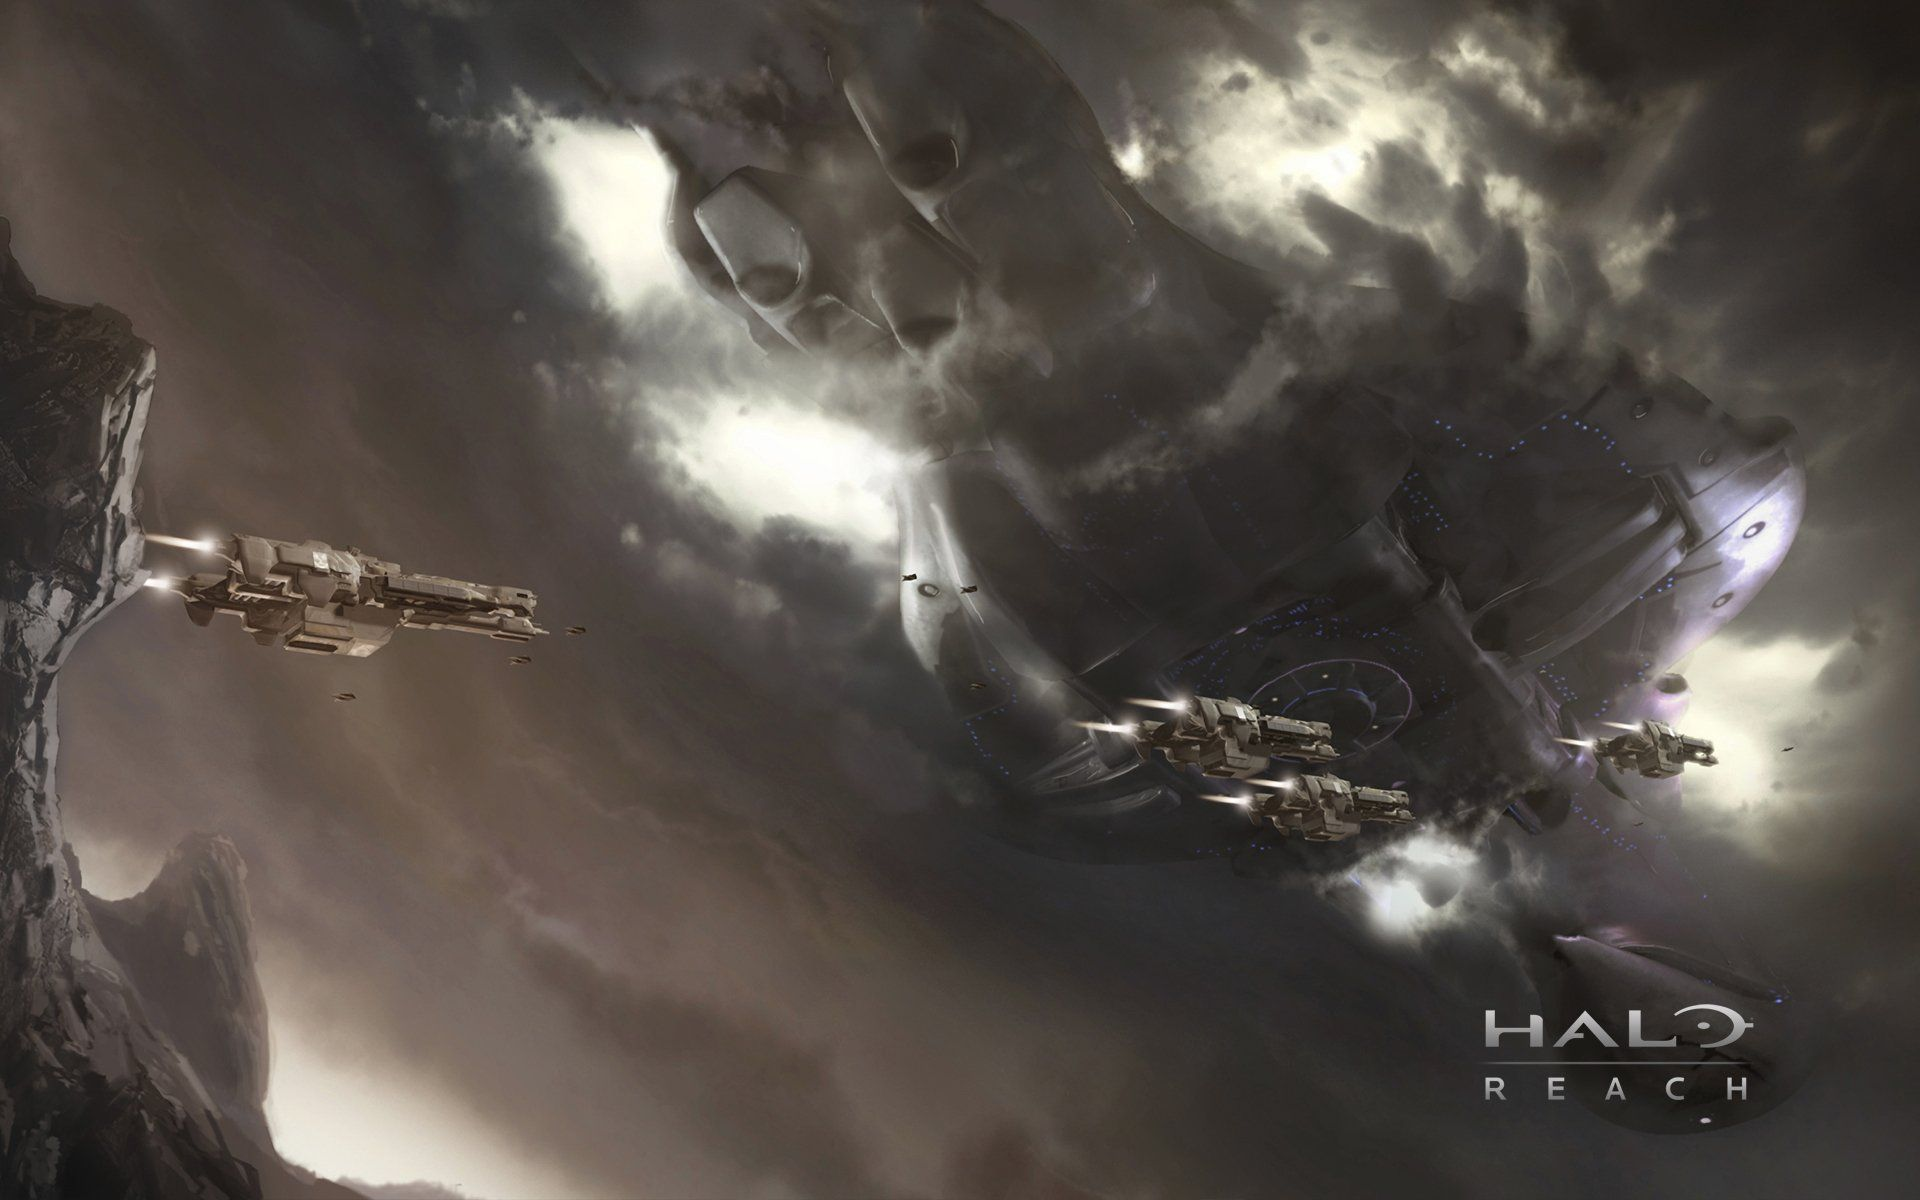 Halo Reach Wallpapers - Top Free Halo Reach Backgrounds